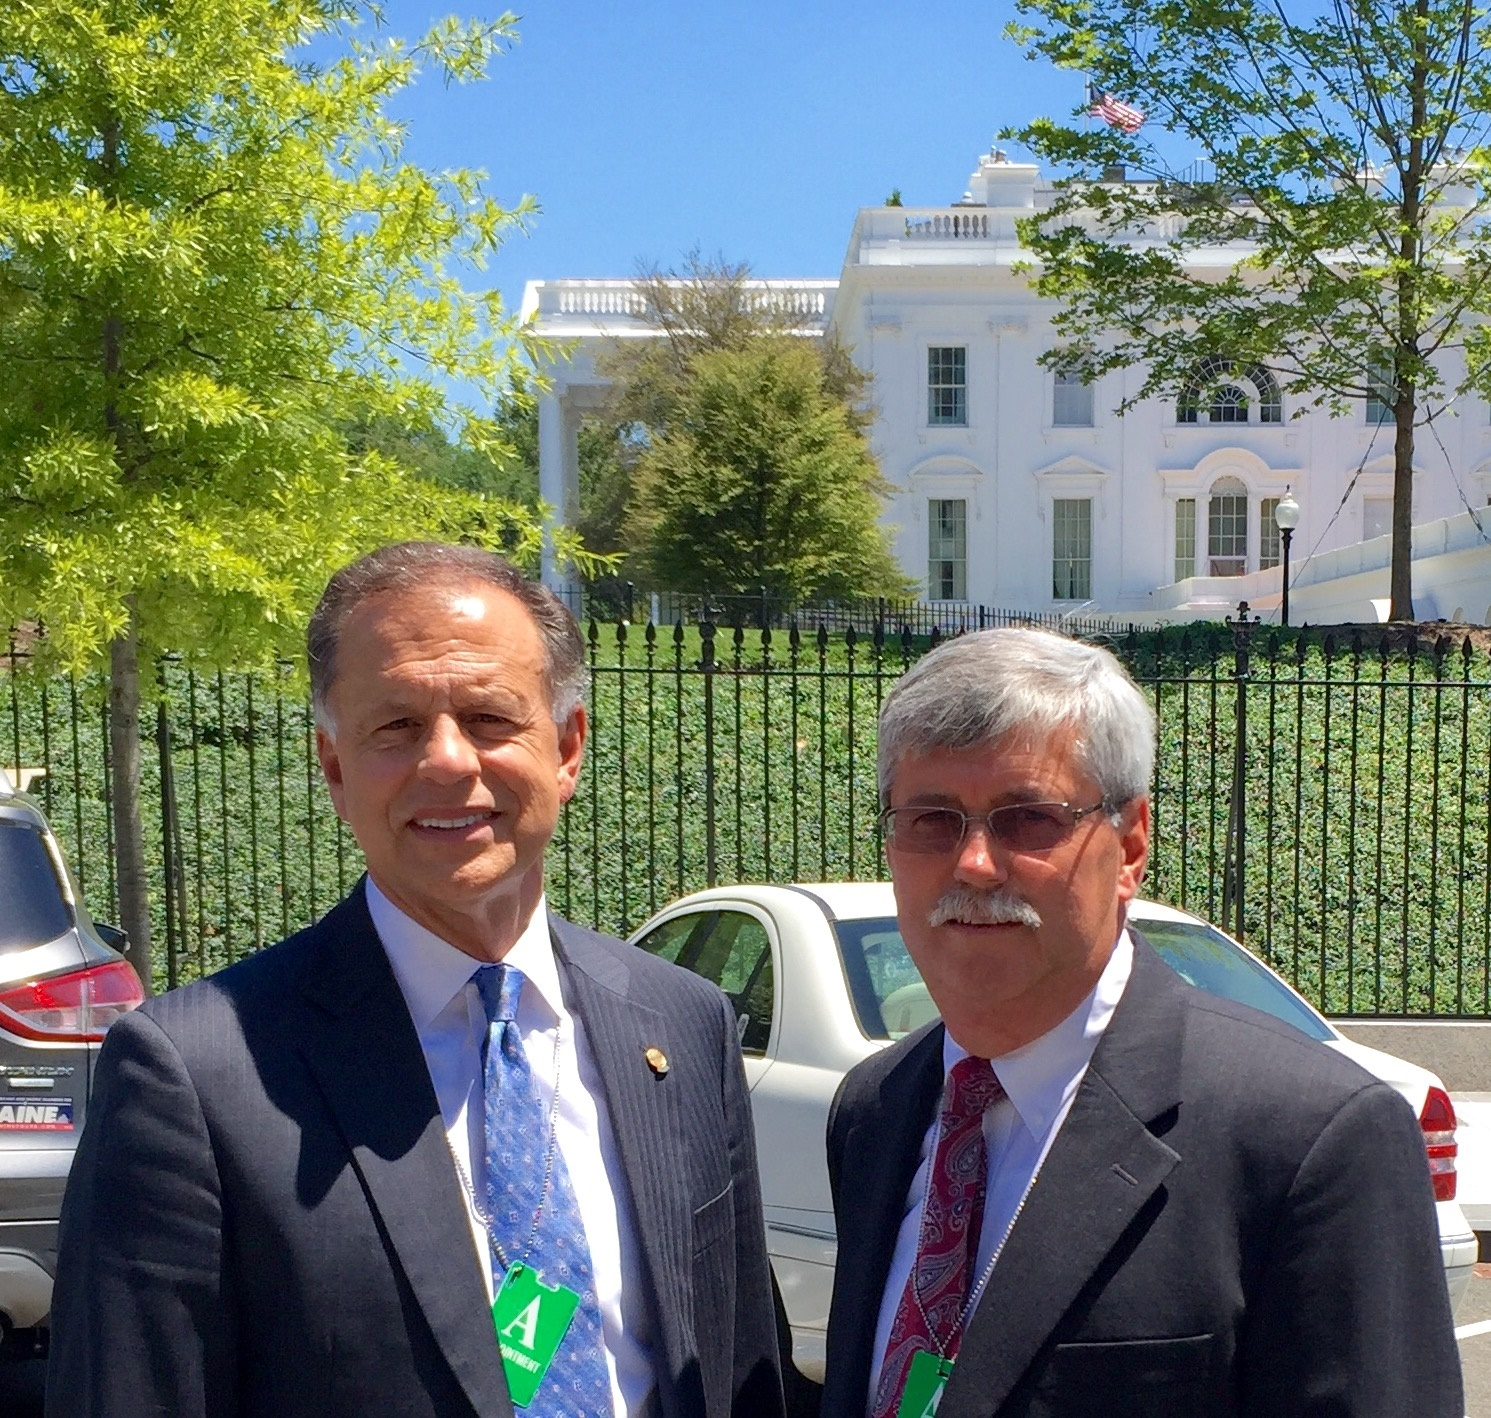 Gary Stooksbury, CEO of Aiken Electric Cooperative and Dwayne Cartwright, CEO of Berkeley Electric, outside of the White House after their meeting with the White House Rural Council and the USDA's Rural Utilities Service.